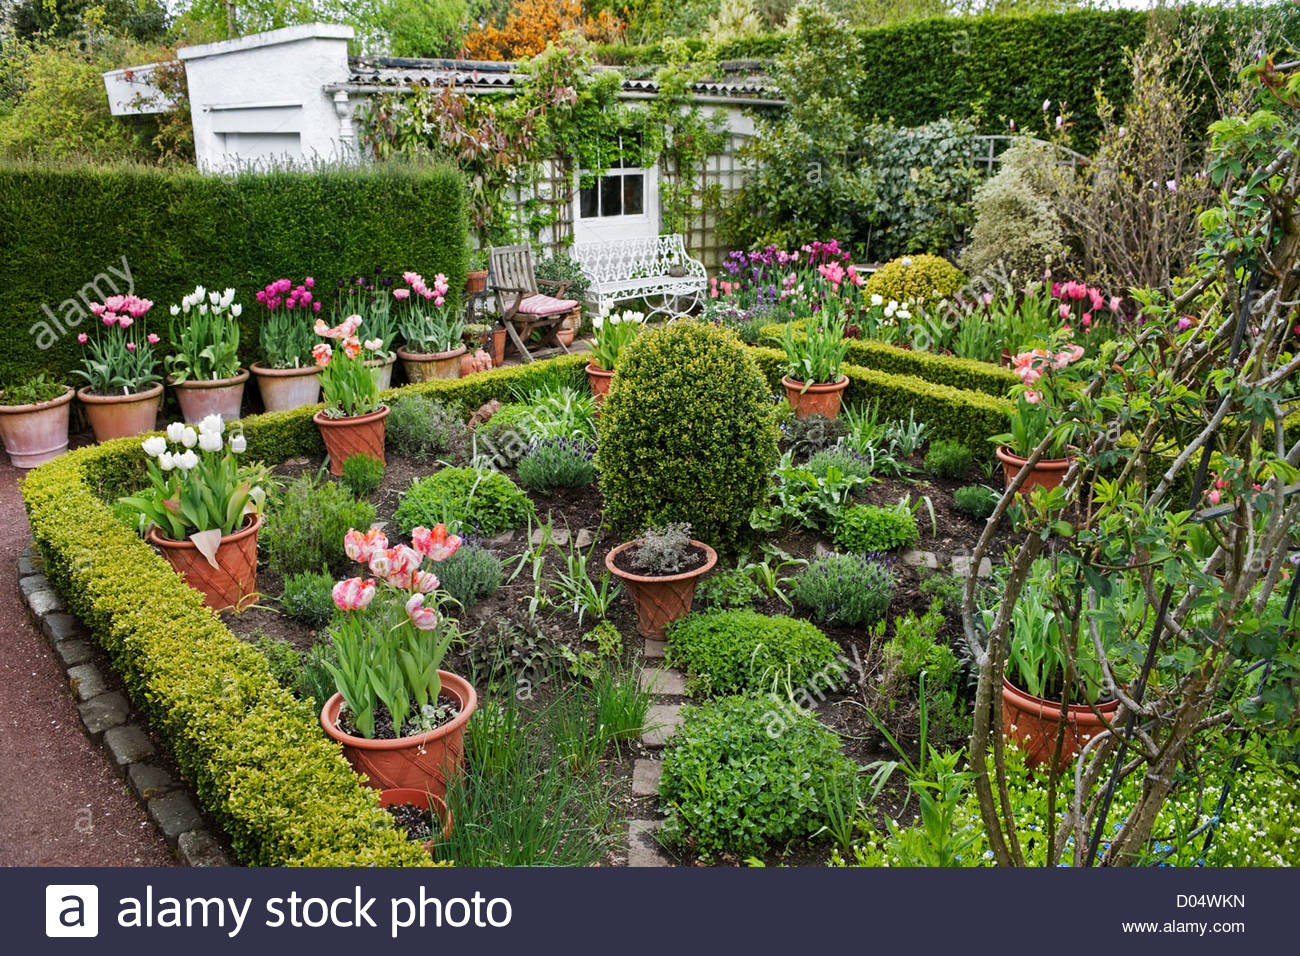 potager garden with herbs and tulips in containers 39 roscullen 39 stock photo 51739065 alamy. Black Bedroom Furniture Sets. Home Design Ideas